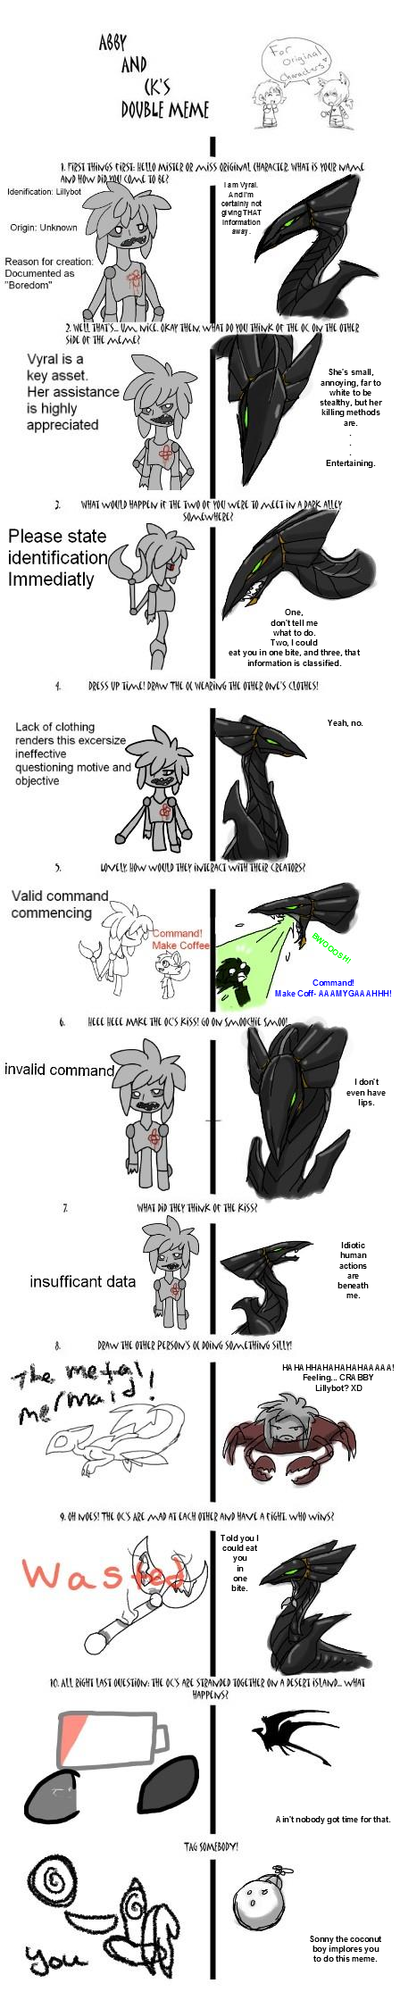 Vyral and Lillybot Double Meme by CoffeeAddictedDragon